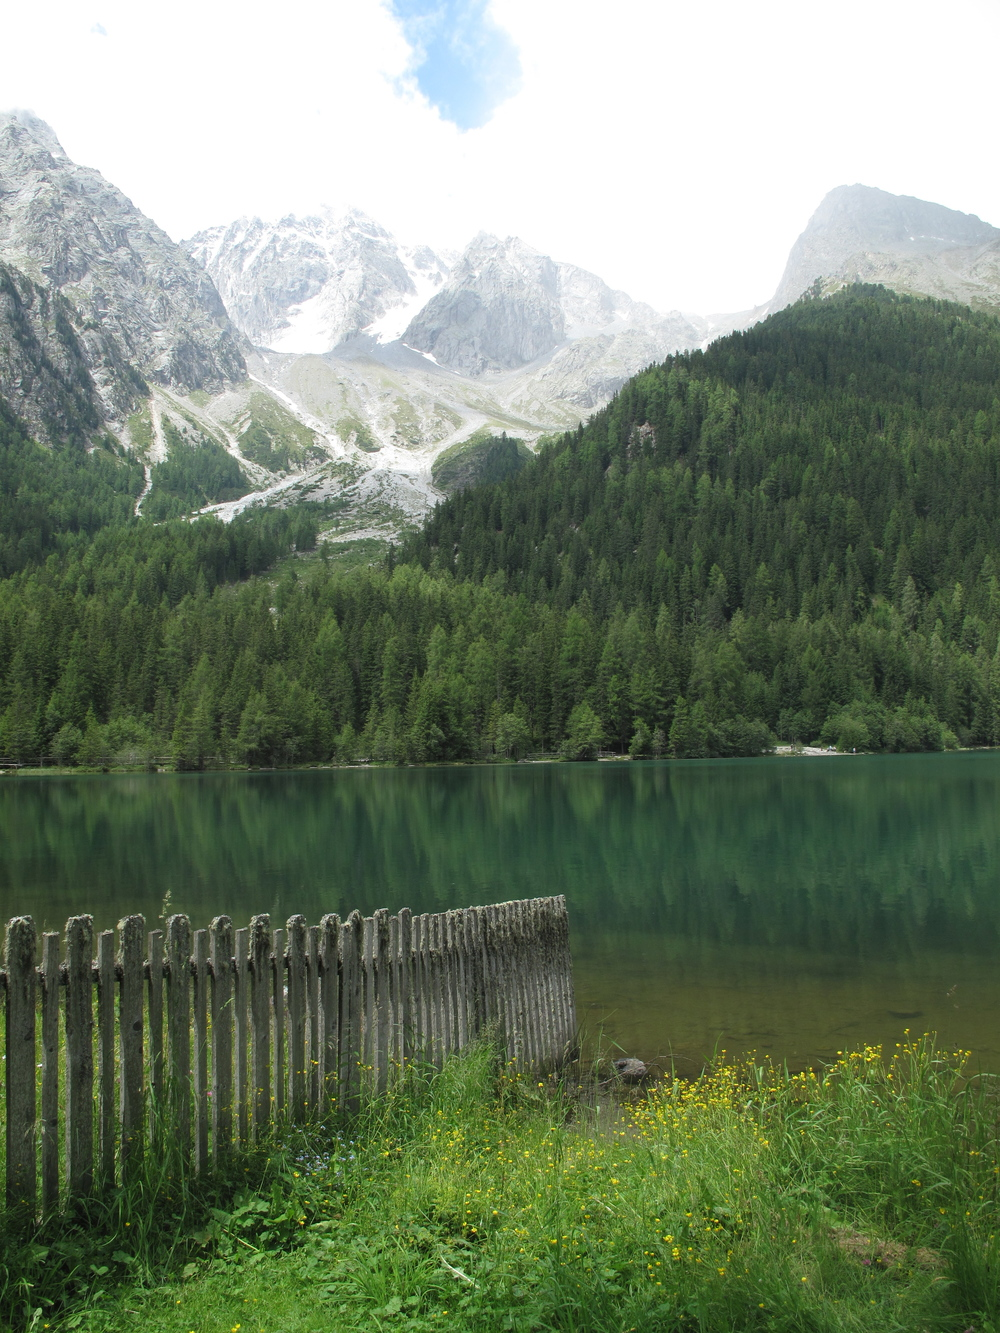 A turquoise lake in the Tyrol Valley, Austria.